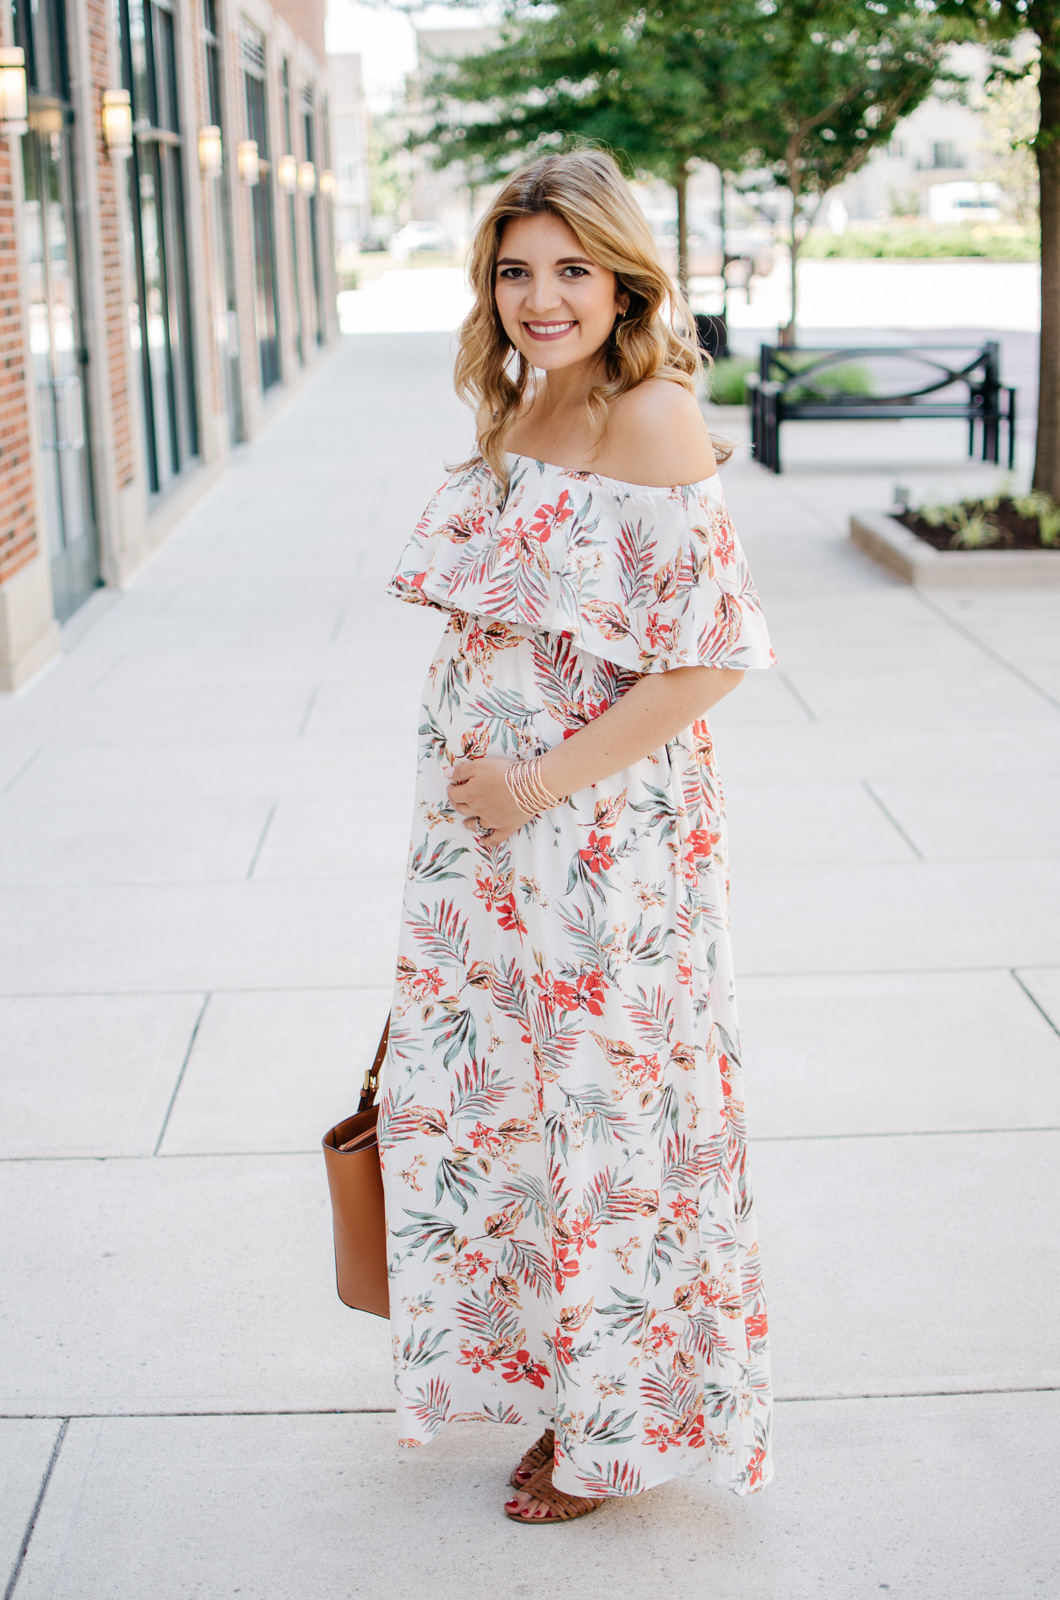 pregnancy outfits for summer - palm print maxi | For more cute pregnancy outfits, head to bylaurenm.com!